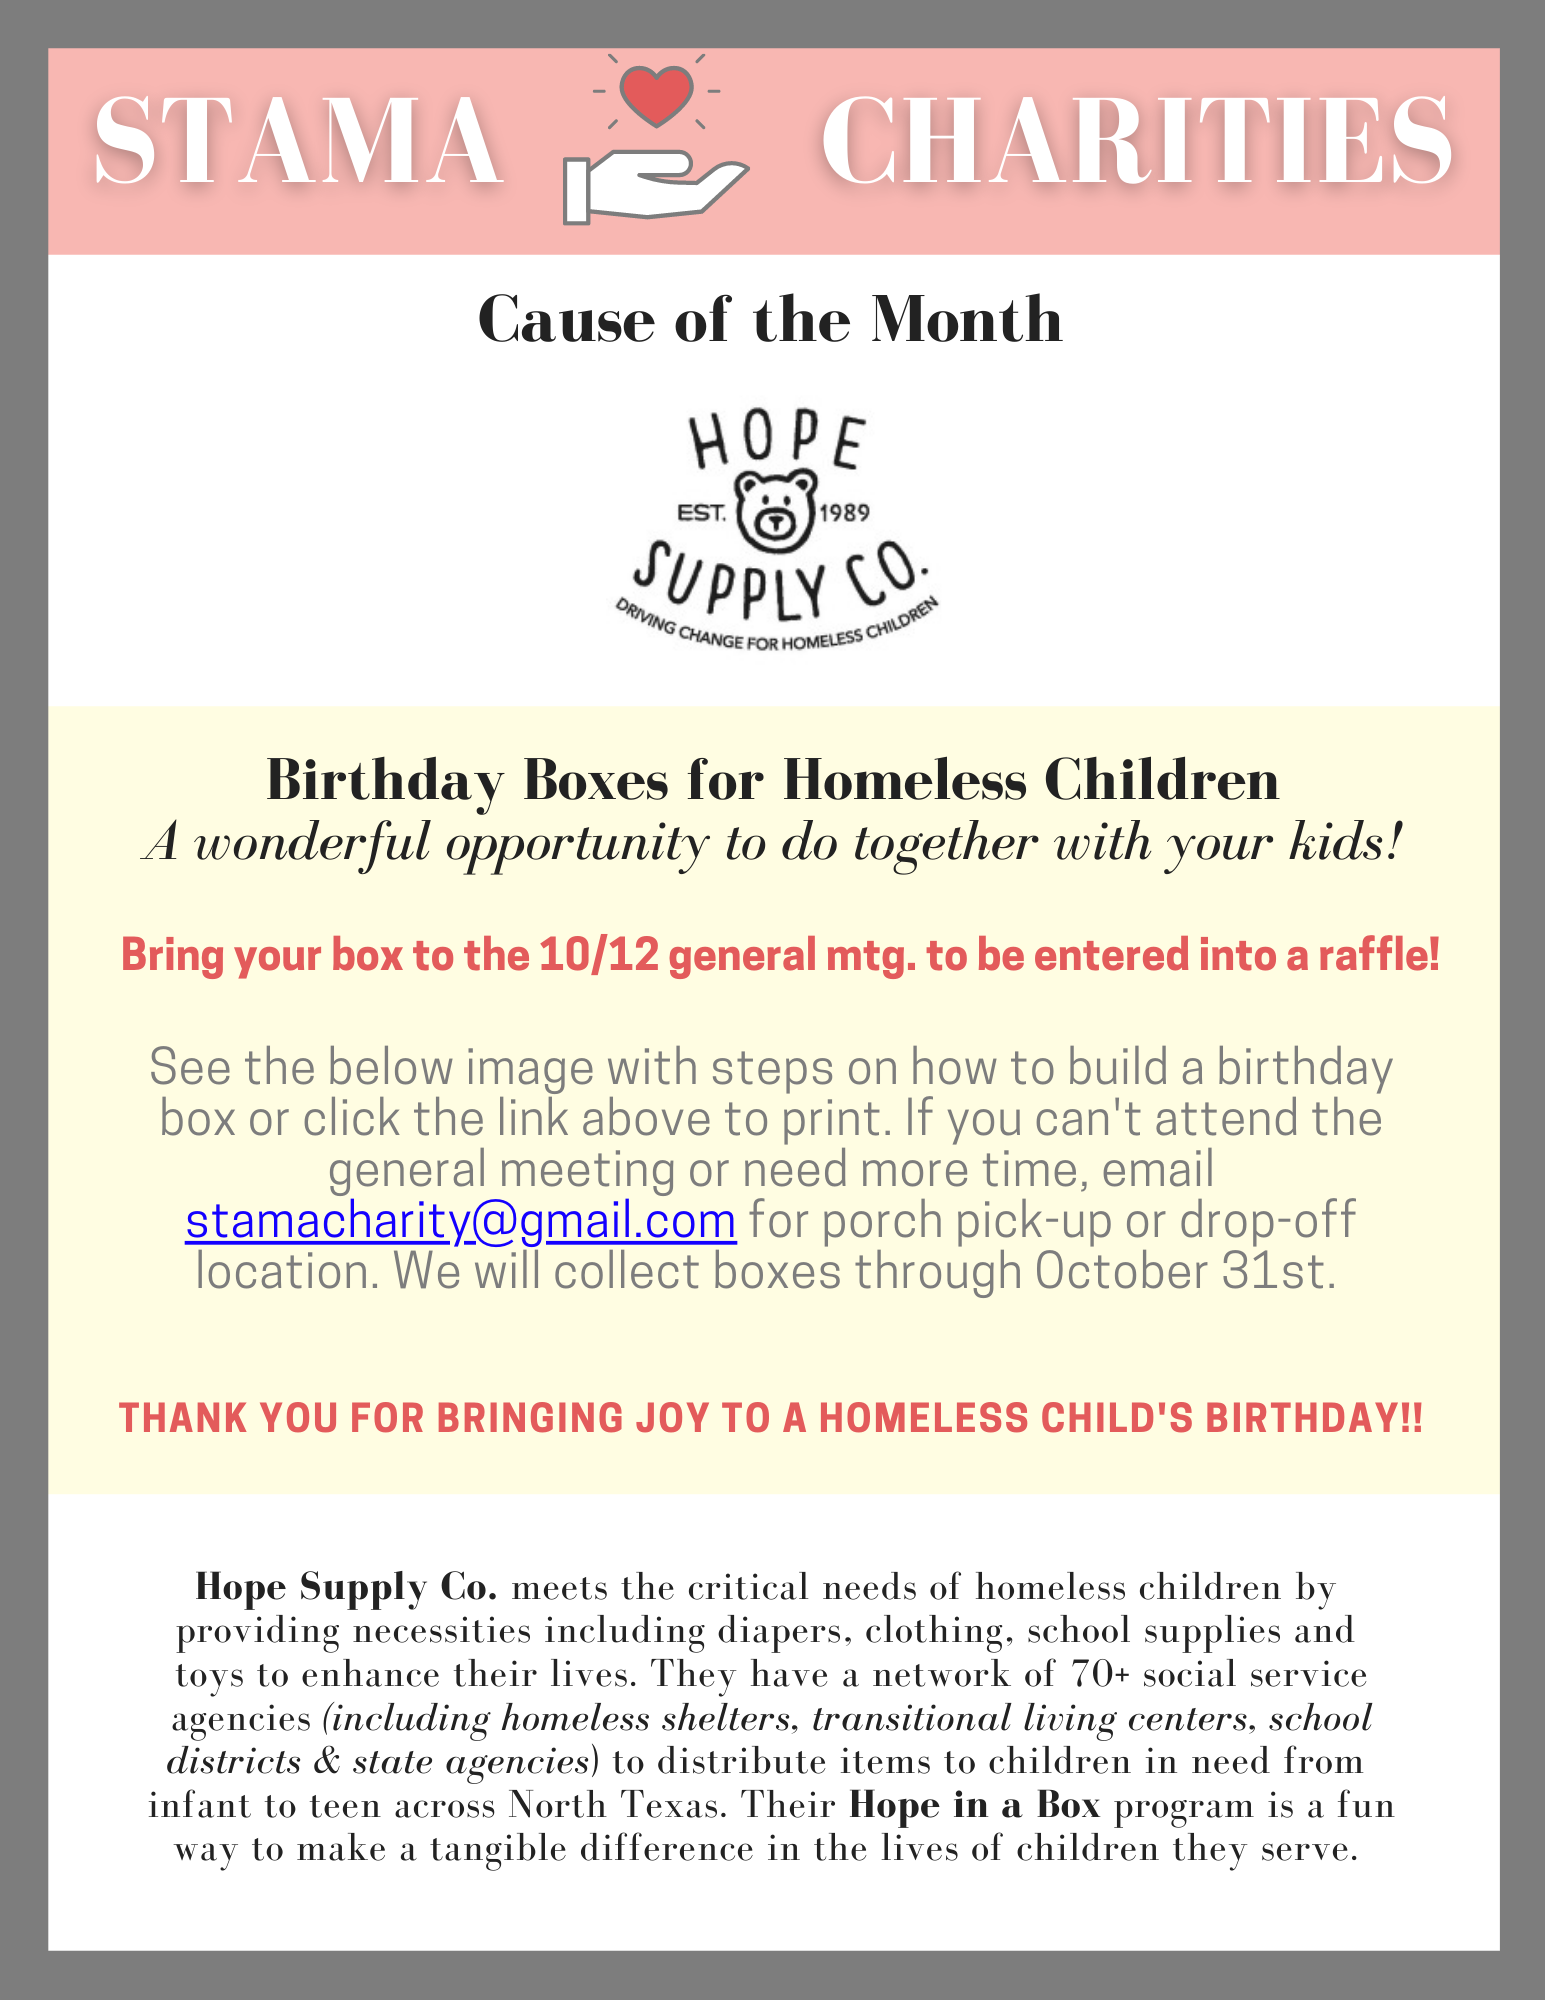 Charities Committee Hope in a Box Birthday Bodxes for Homeless Children